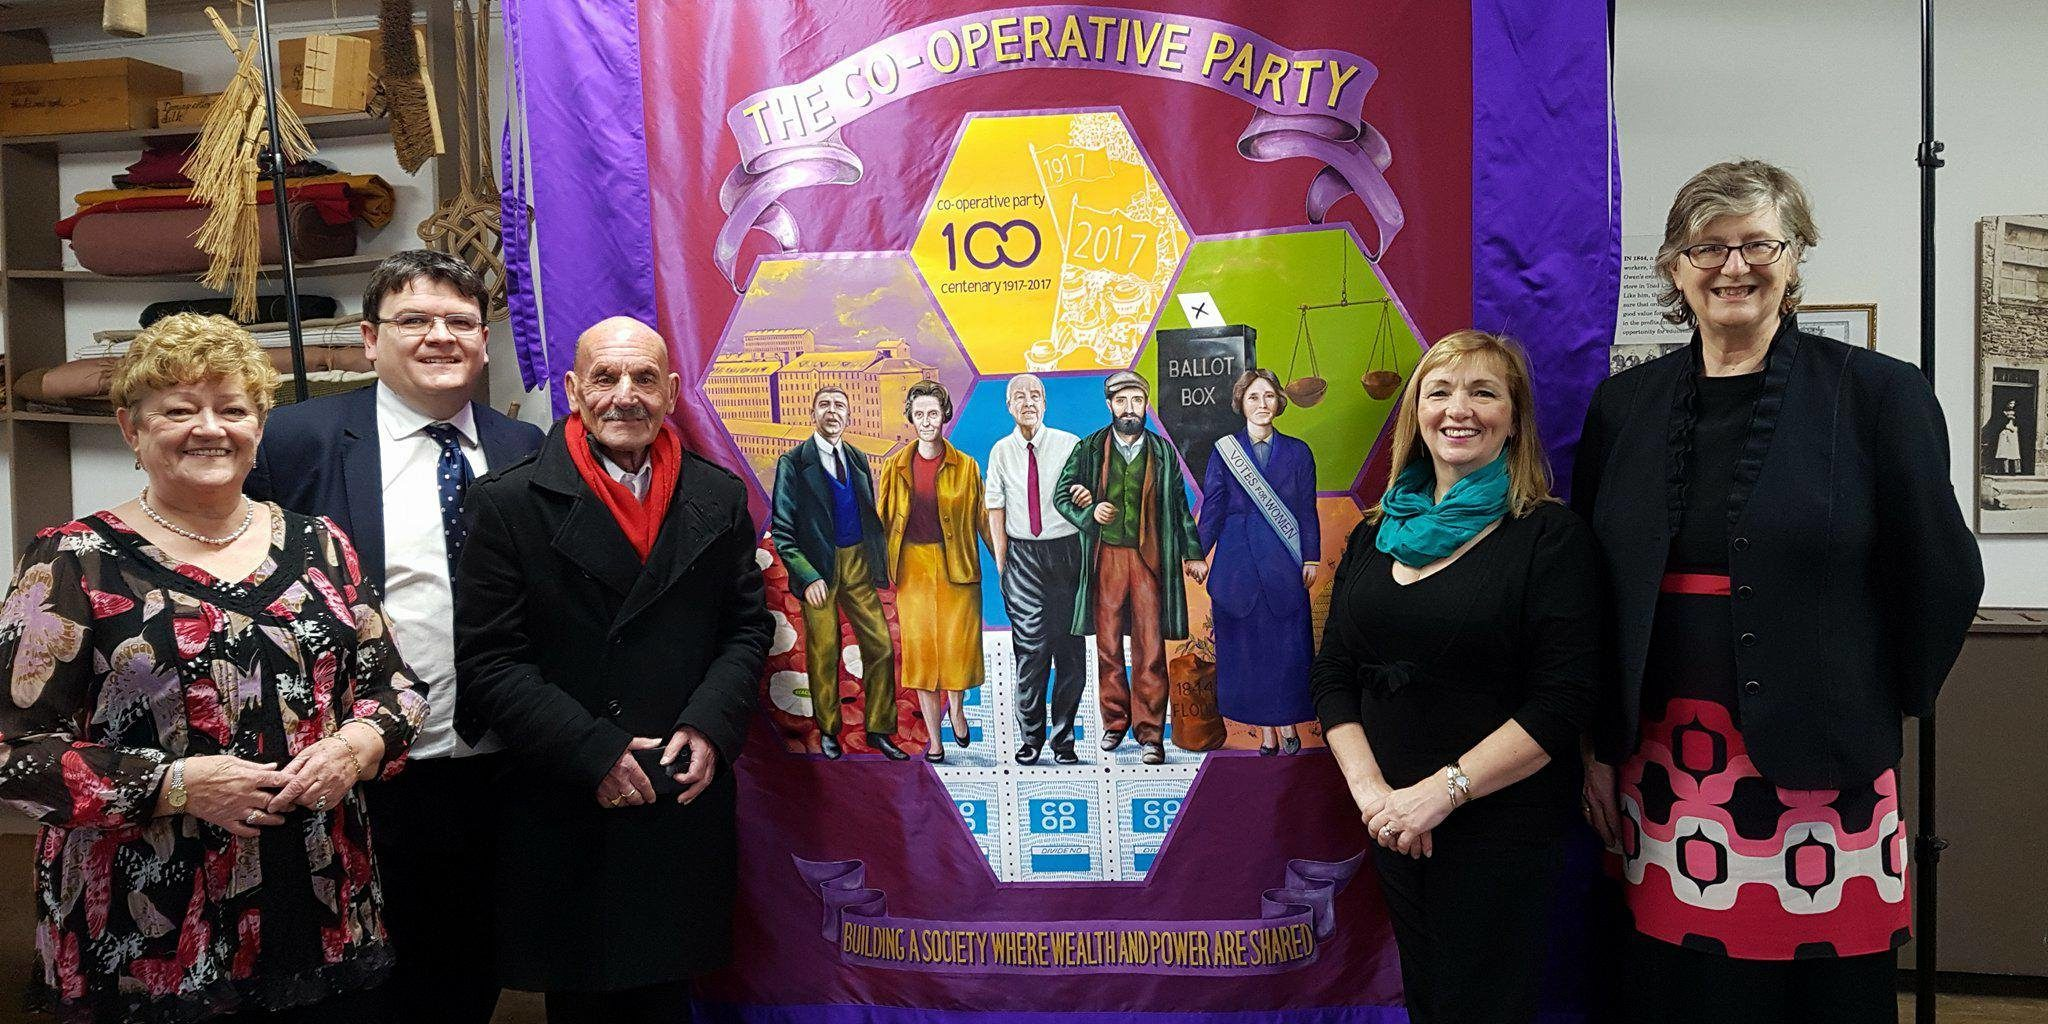 Scottish Co-operative Party members with the Party's Centenary banner at New Lanark.